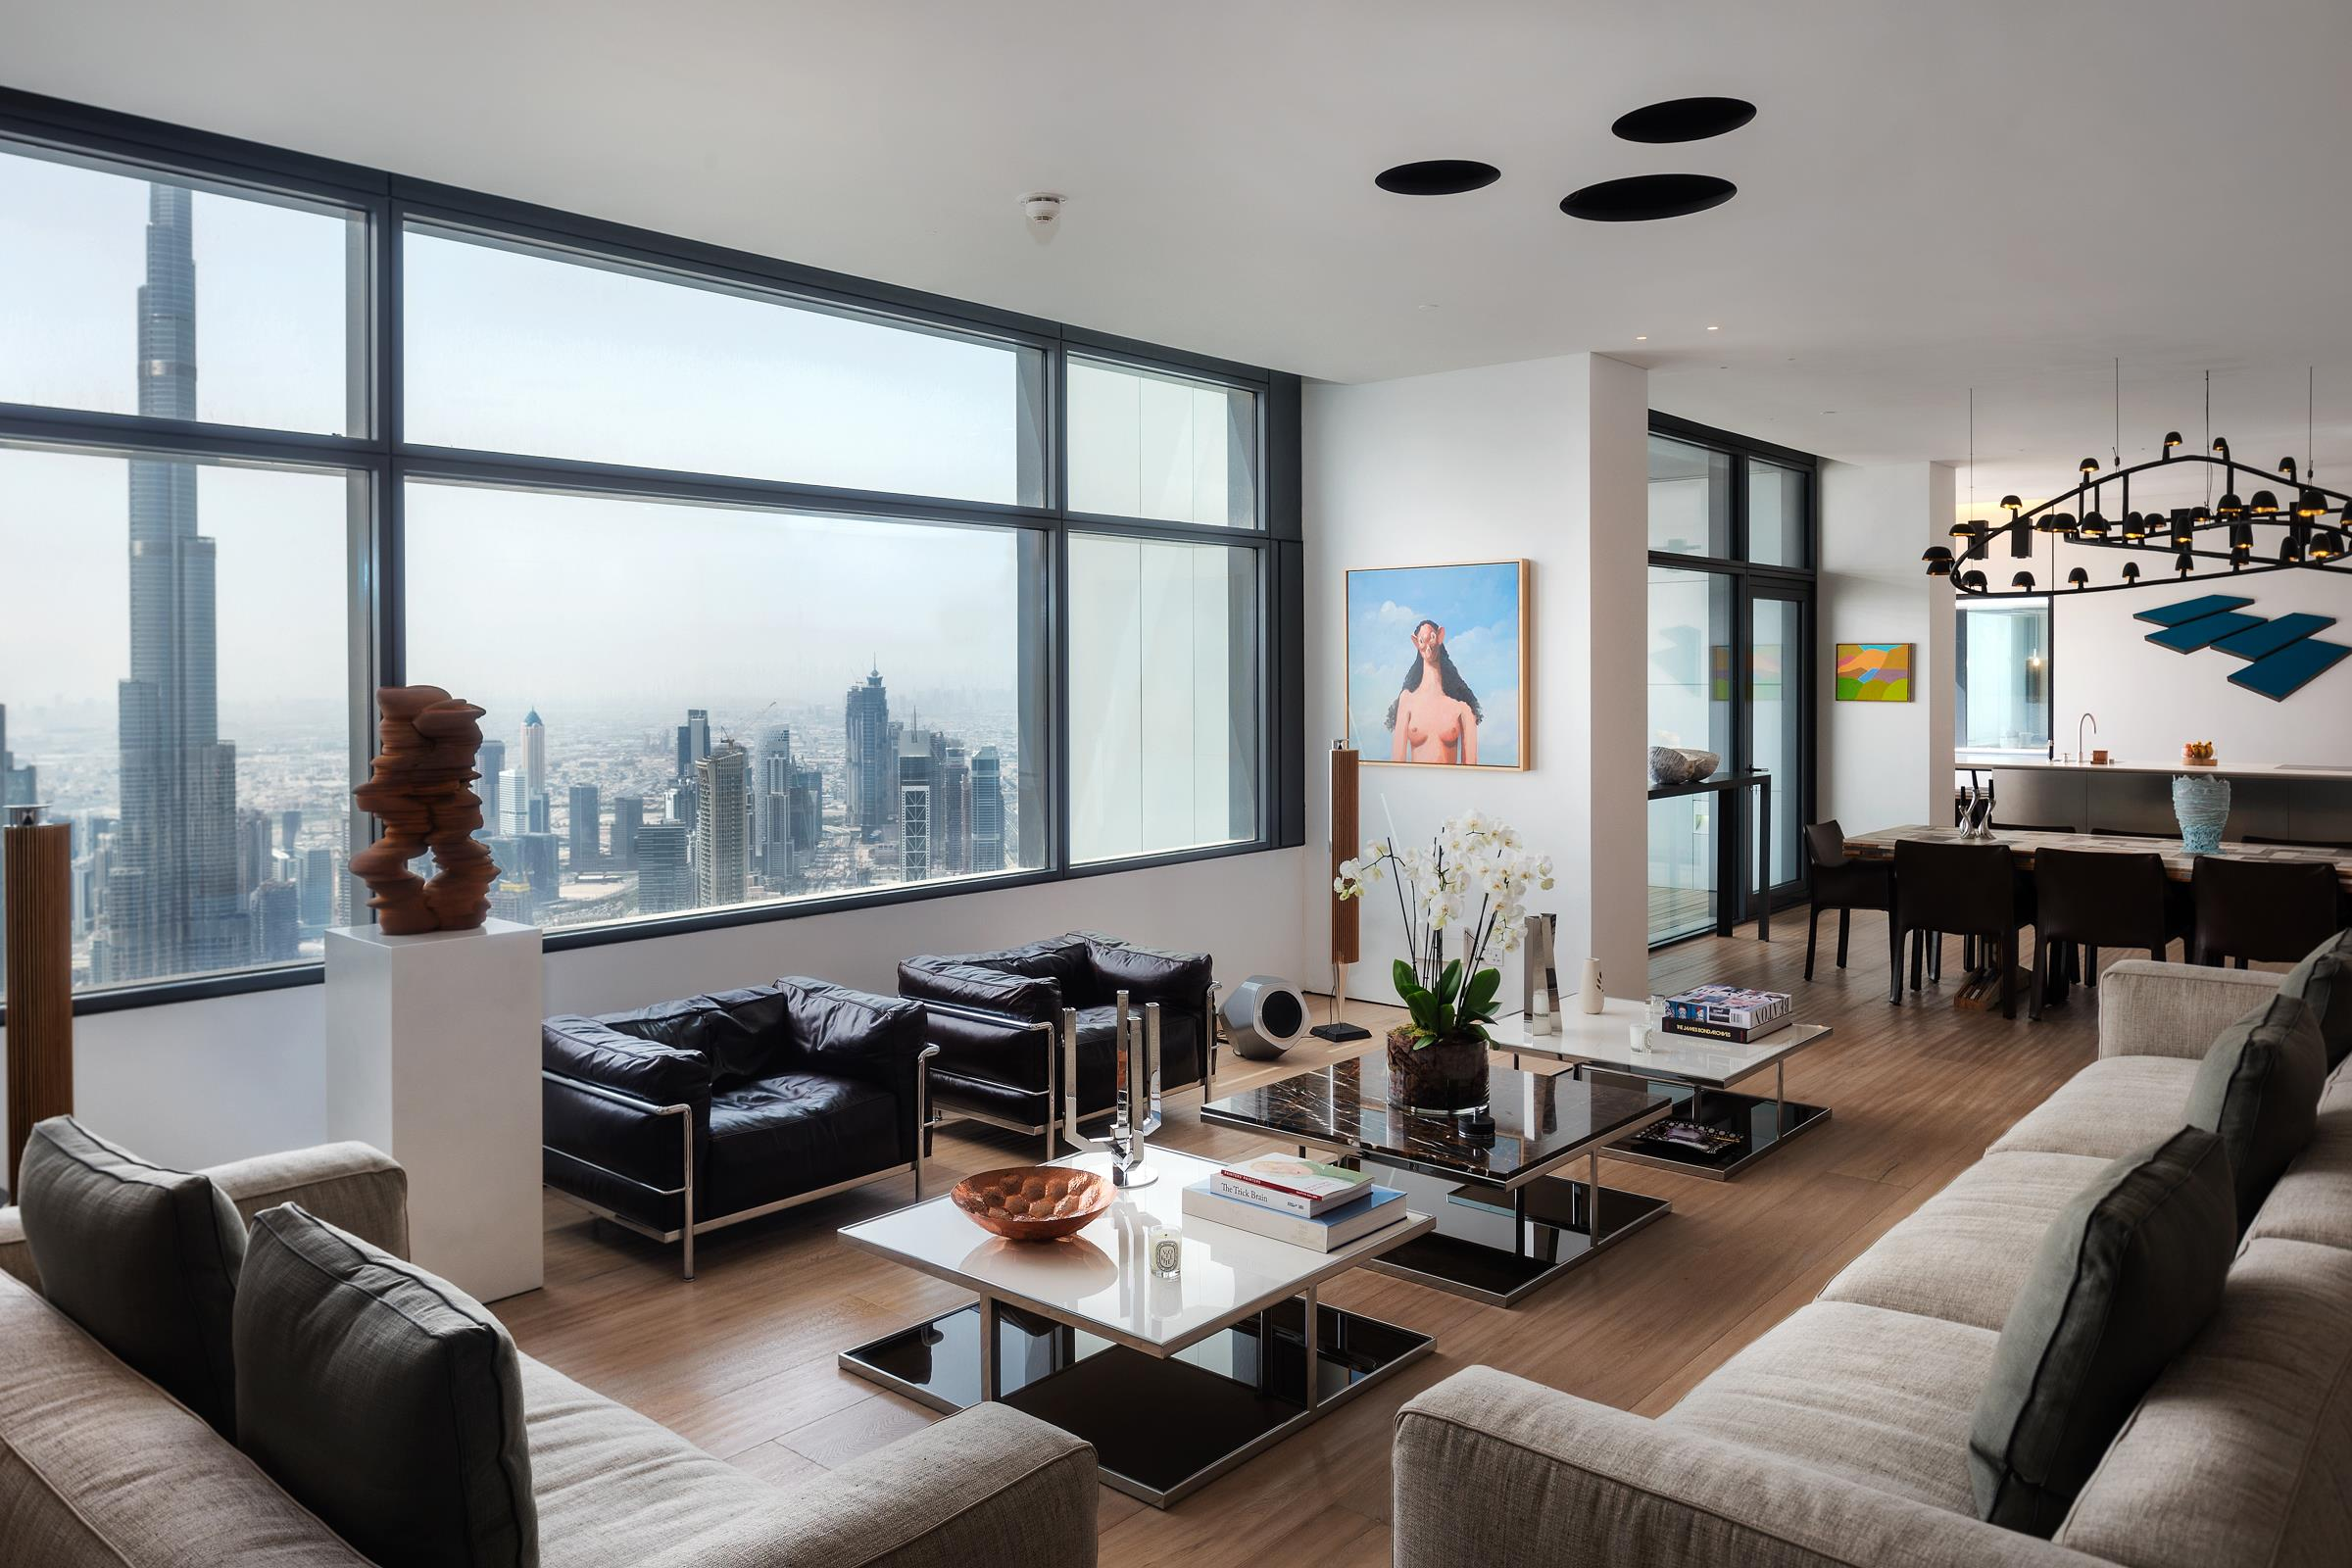 Exquisite Triplex Penthouse remastered to perfection